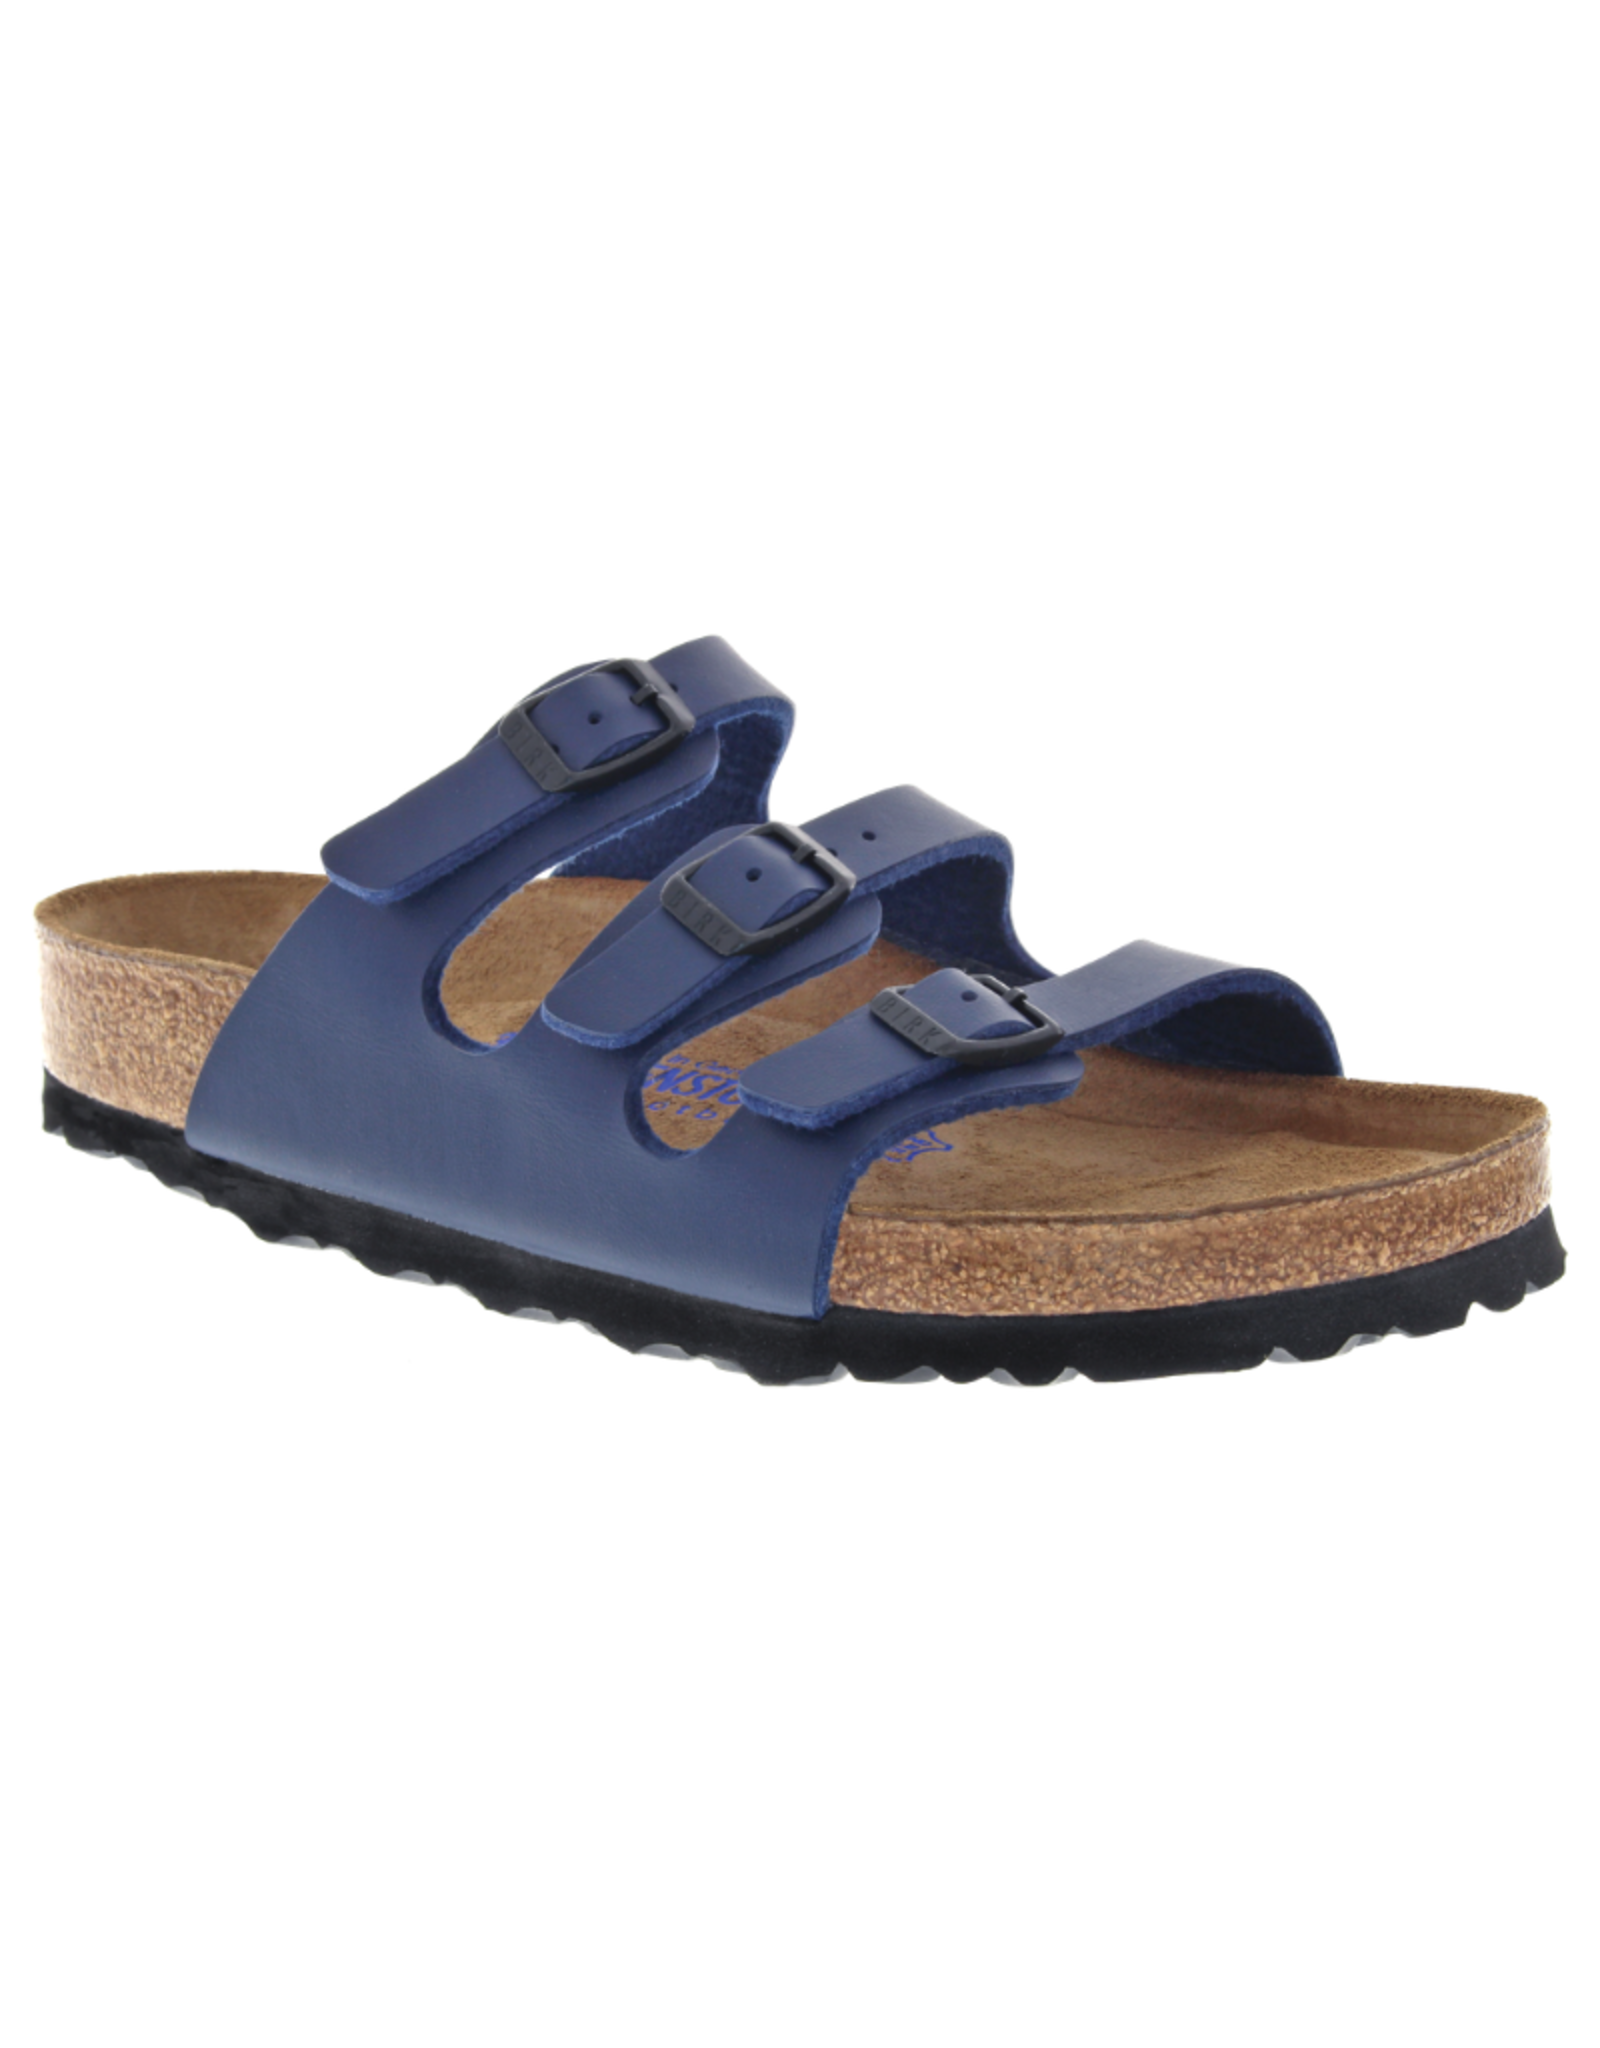 Florida Navy Birko-Flor Soft Footbed